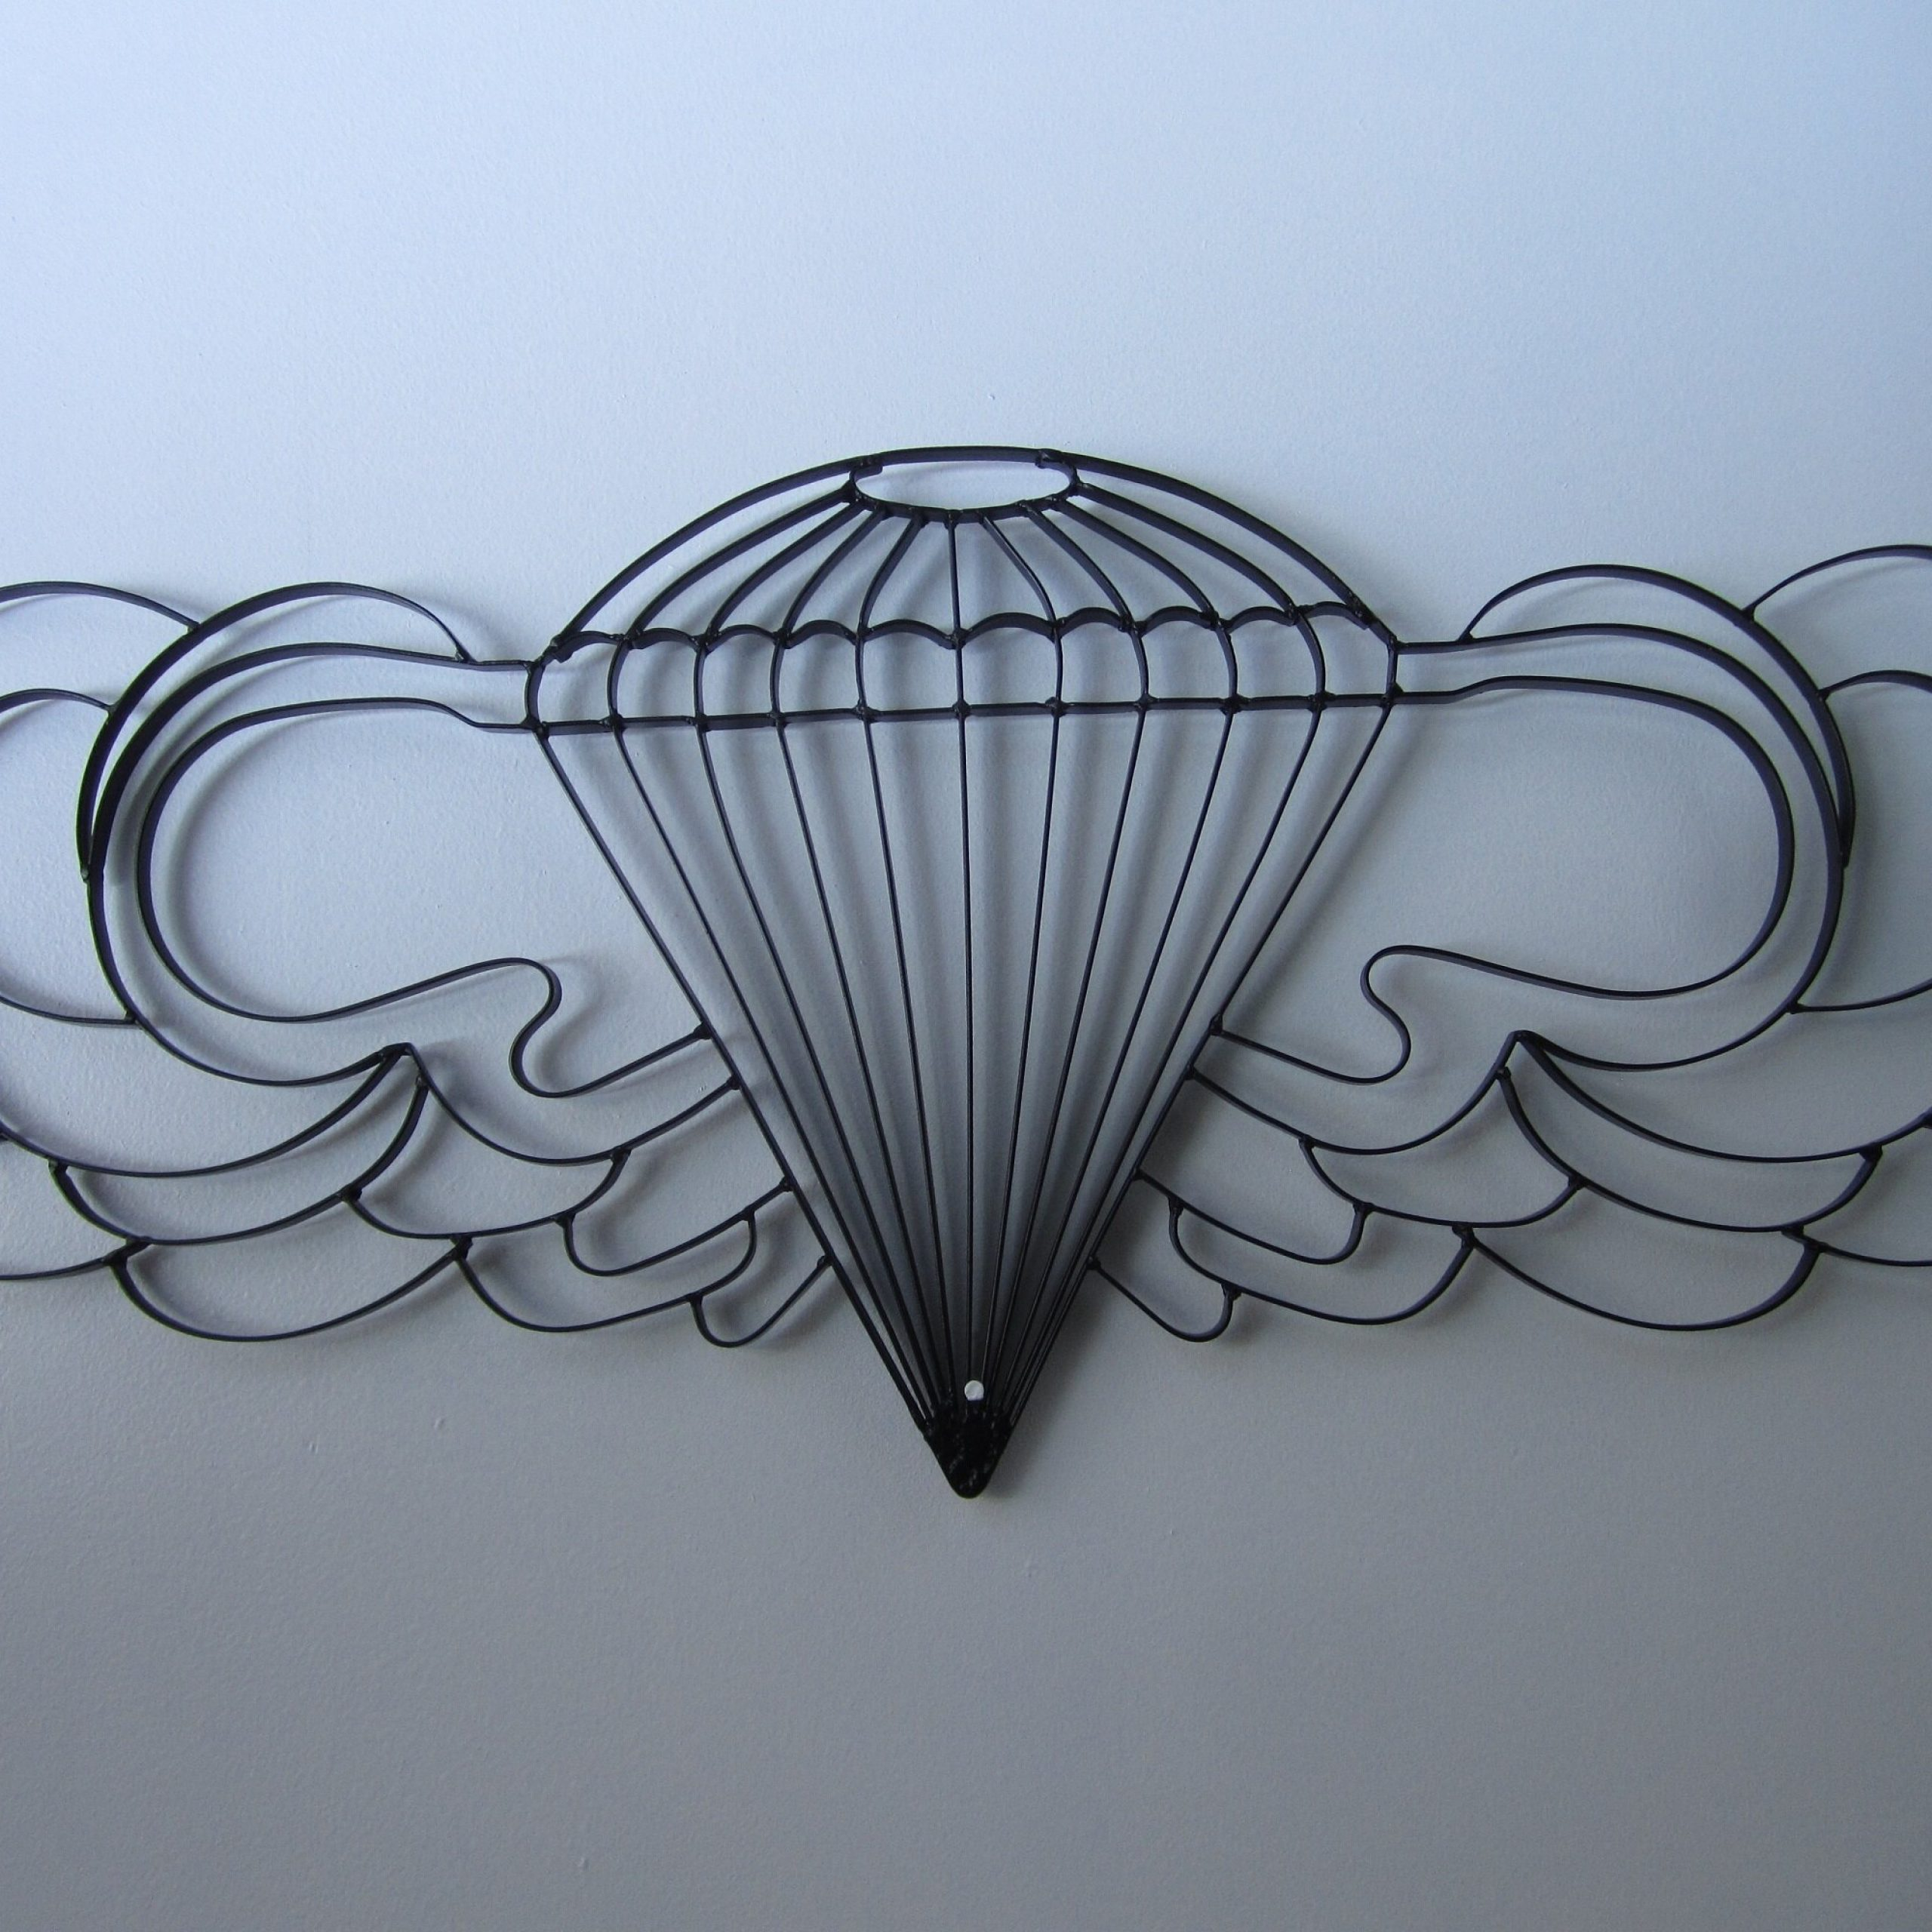 Famous Airborne Handcrafted Metal Wall Décor Pertaining To Handcrafted Metal Wall Décor (View 3 of 20)